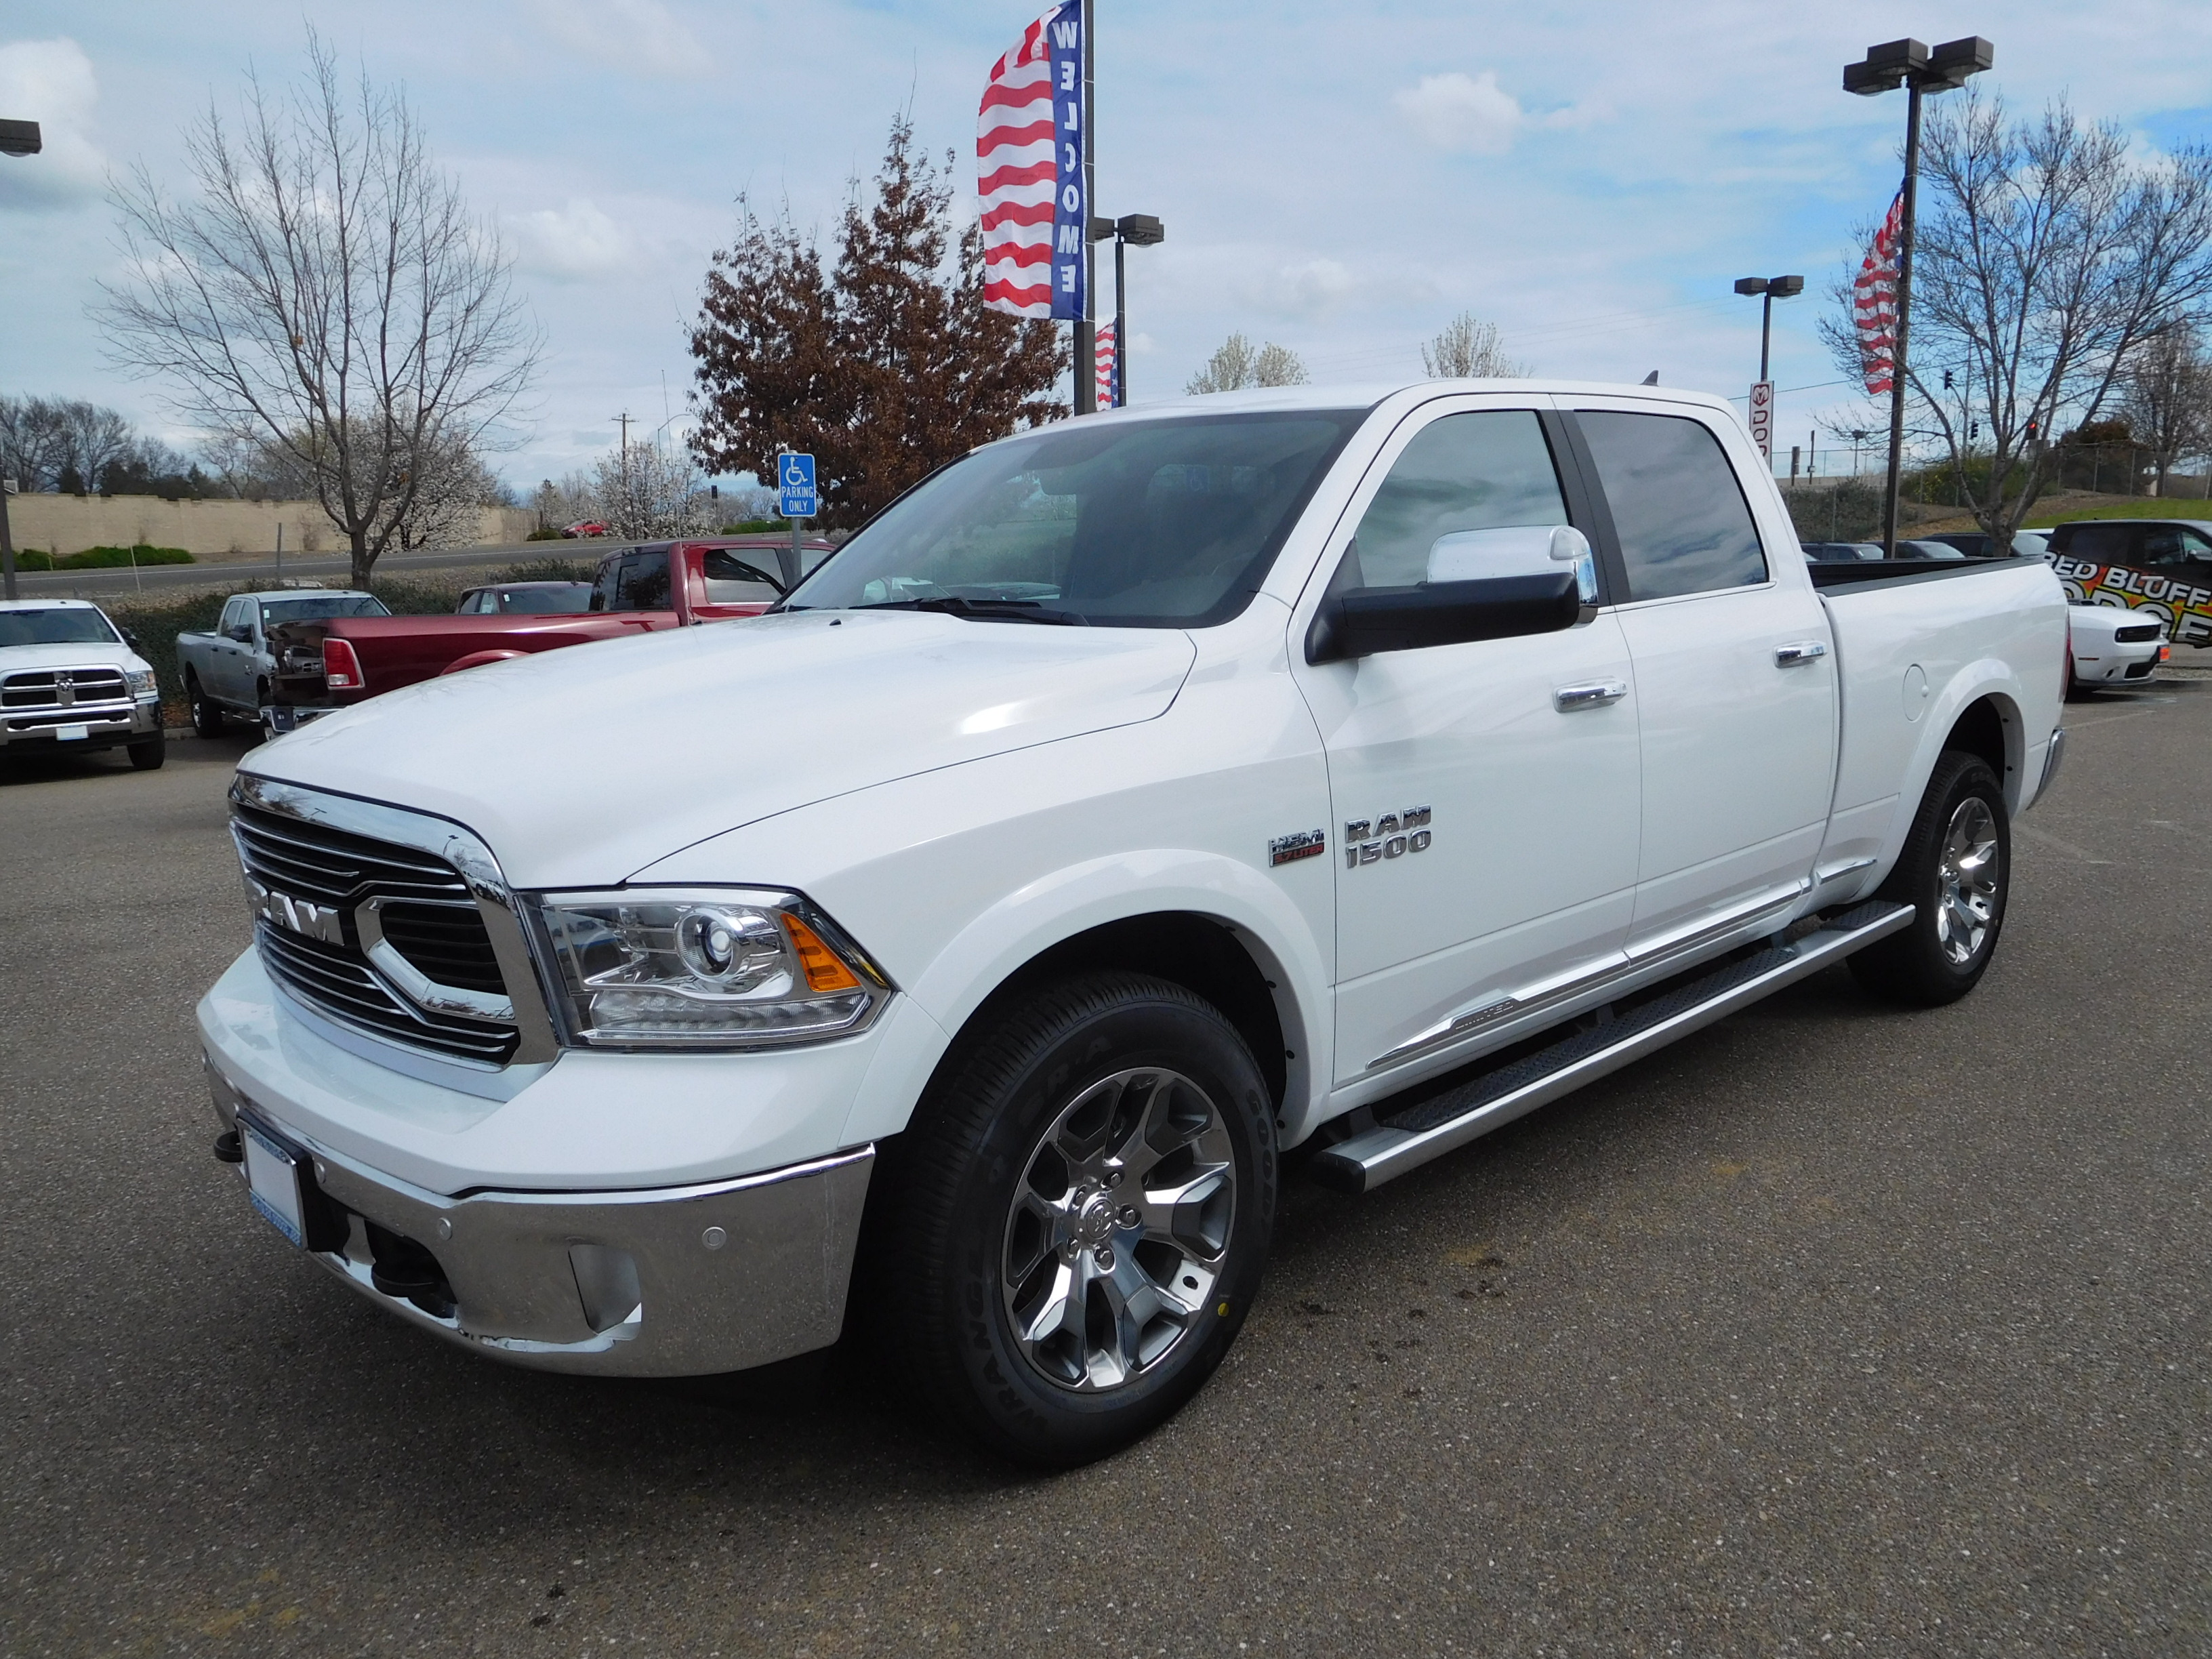 2017 Ram 1500 Crew Cab 4x4, Pickup #14592 - photo 5